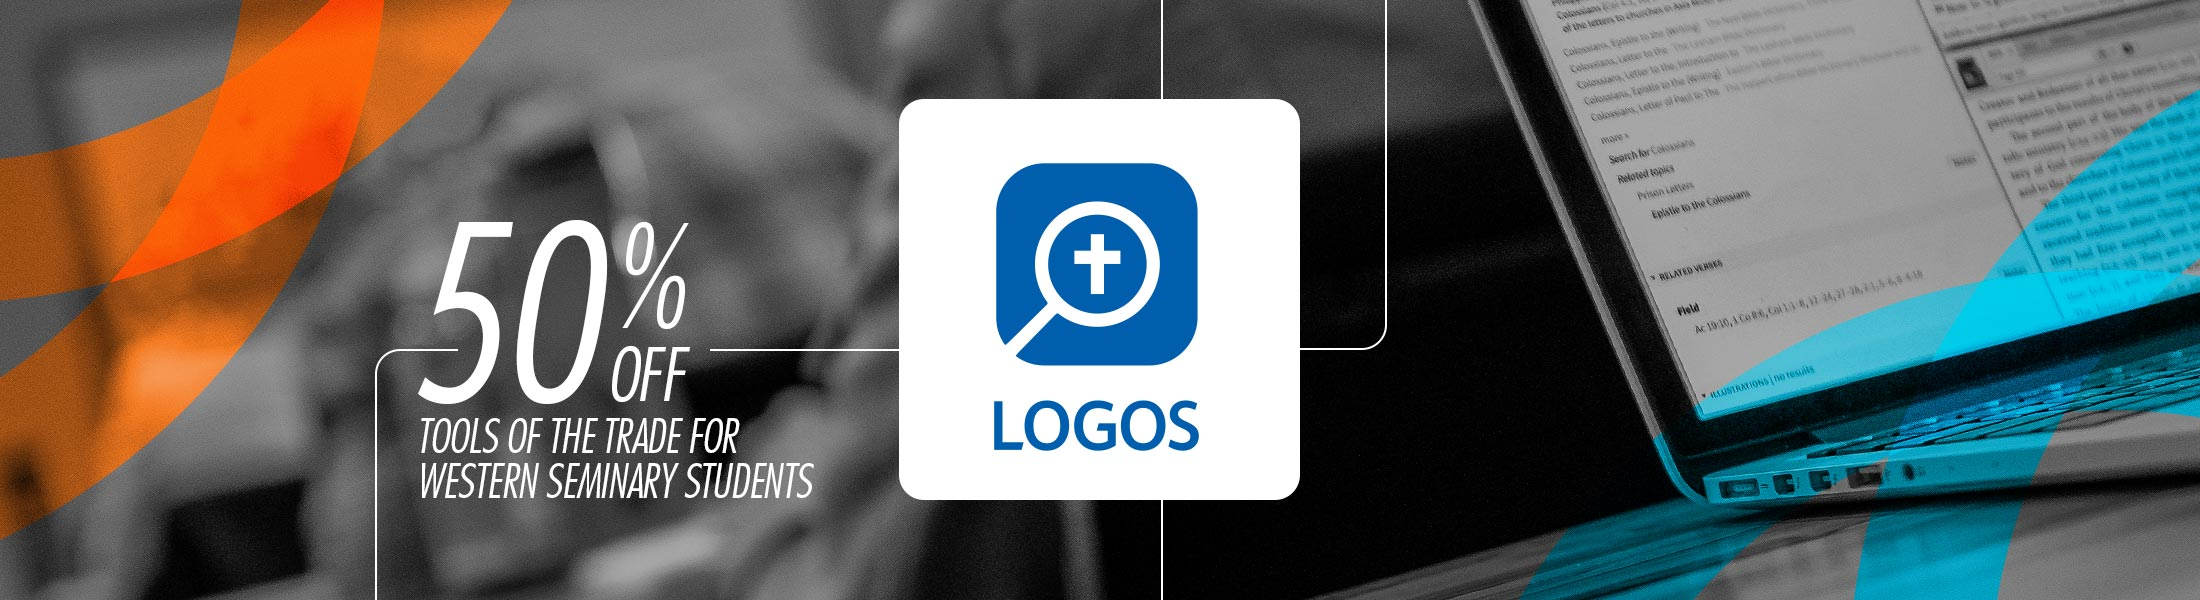 Get info on the massive Logos Bible Software discount for Western Seminary students.